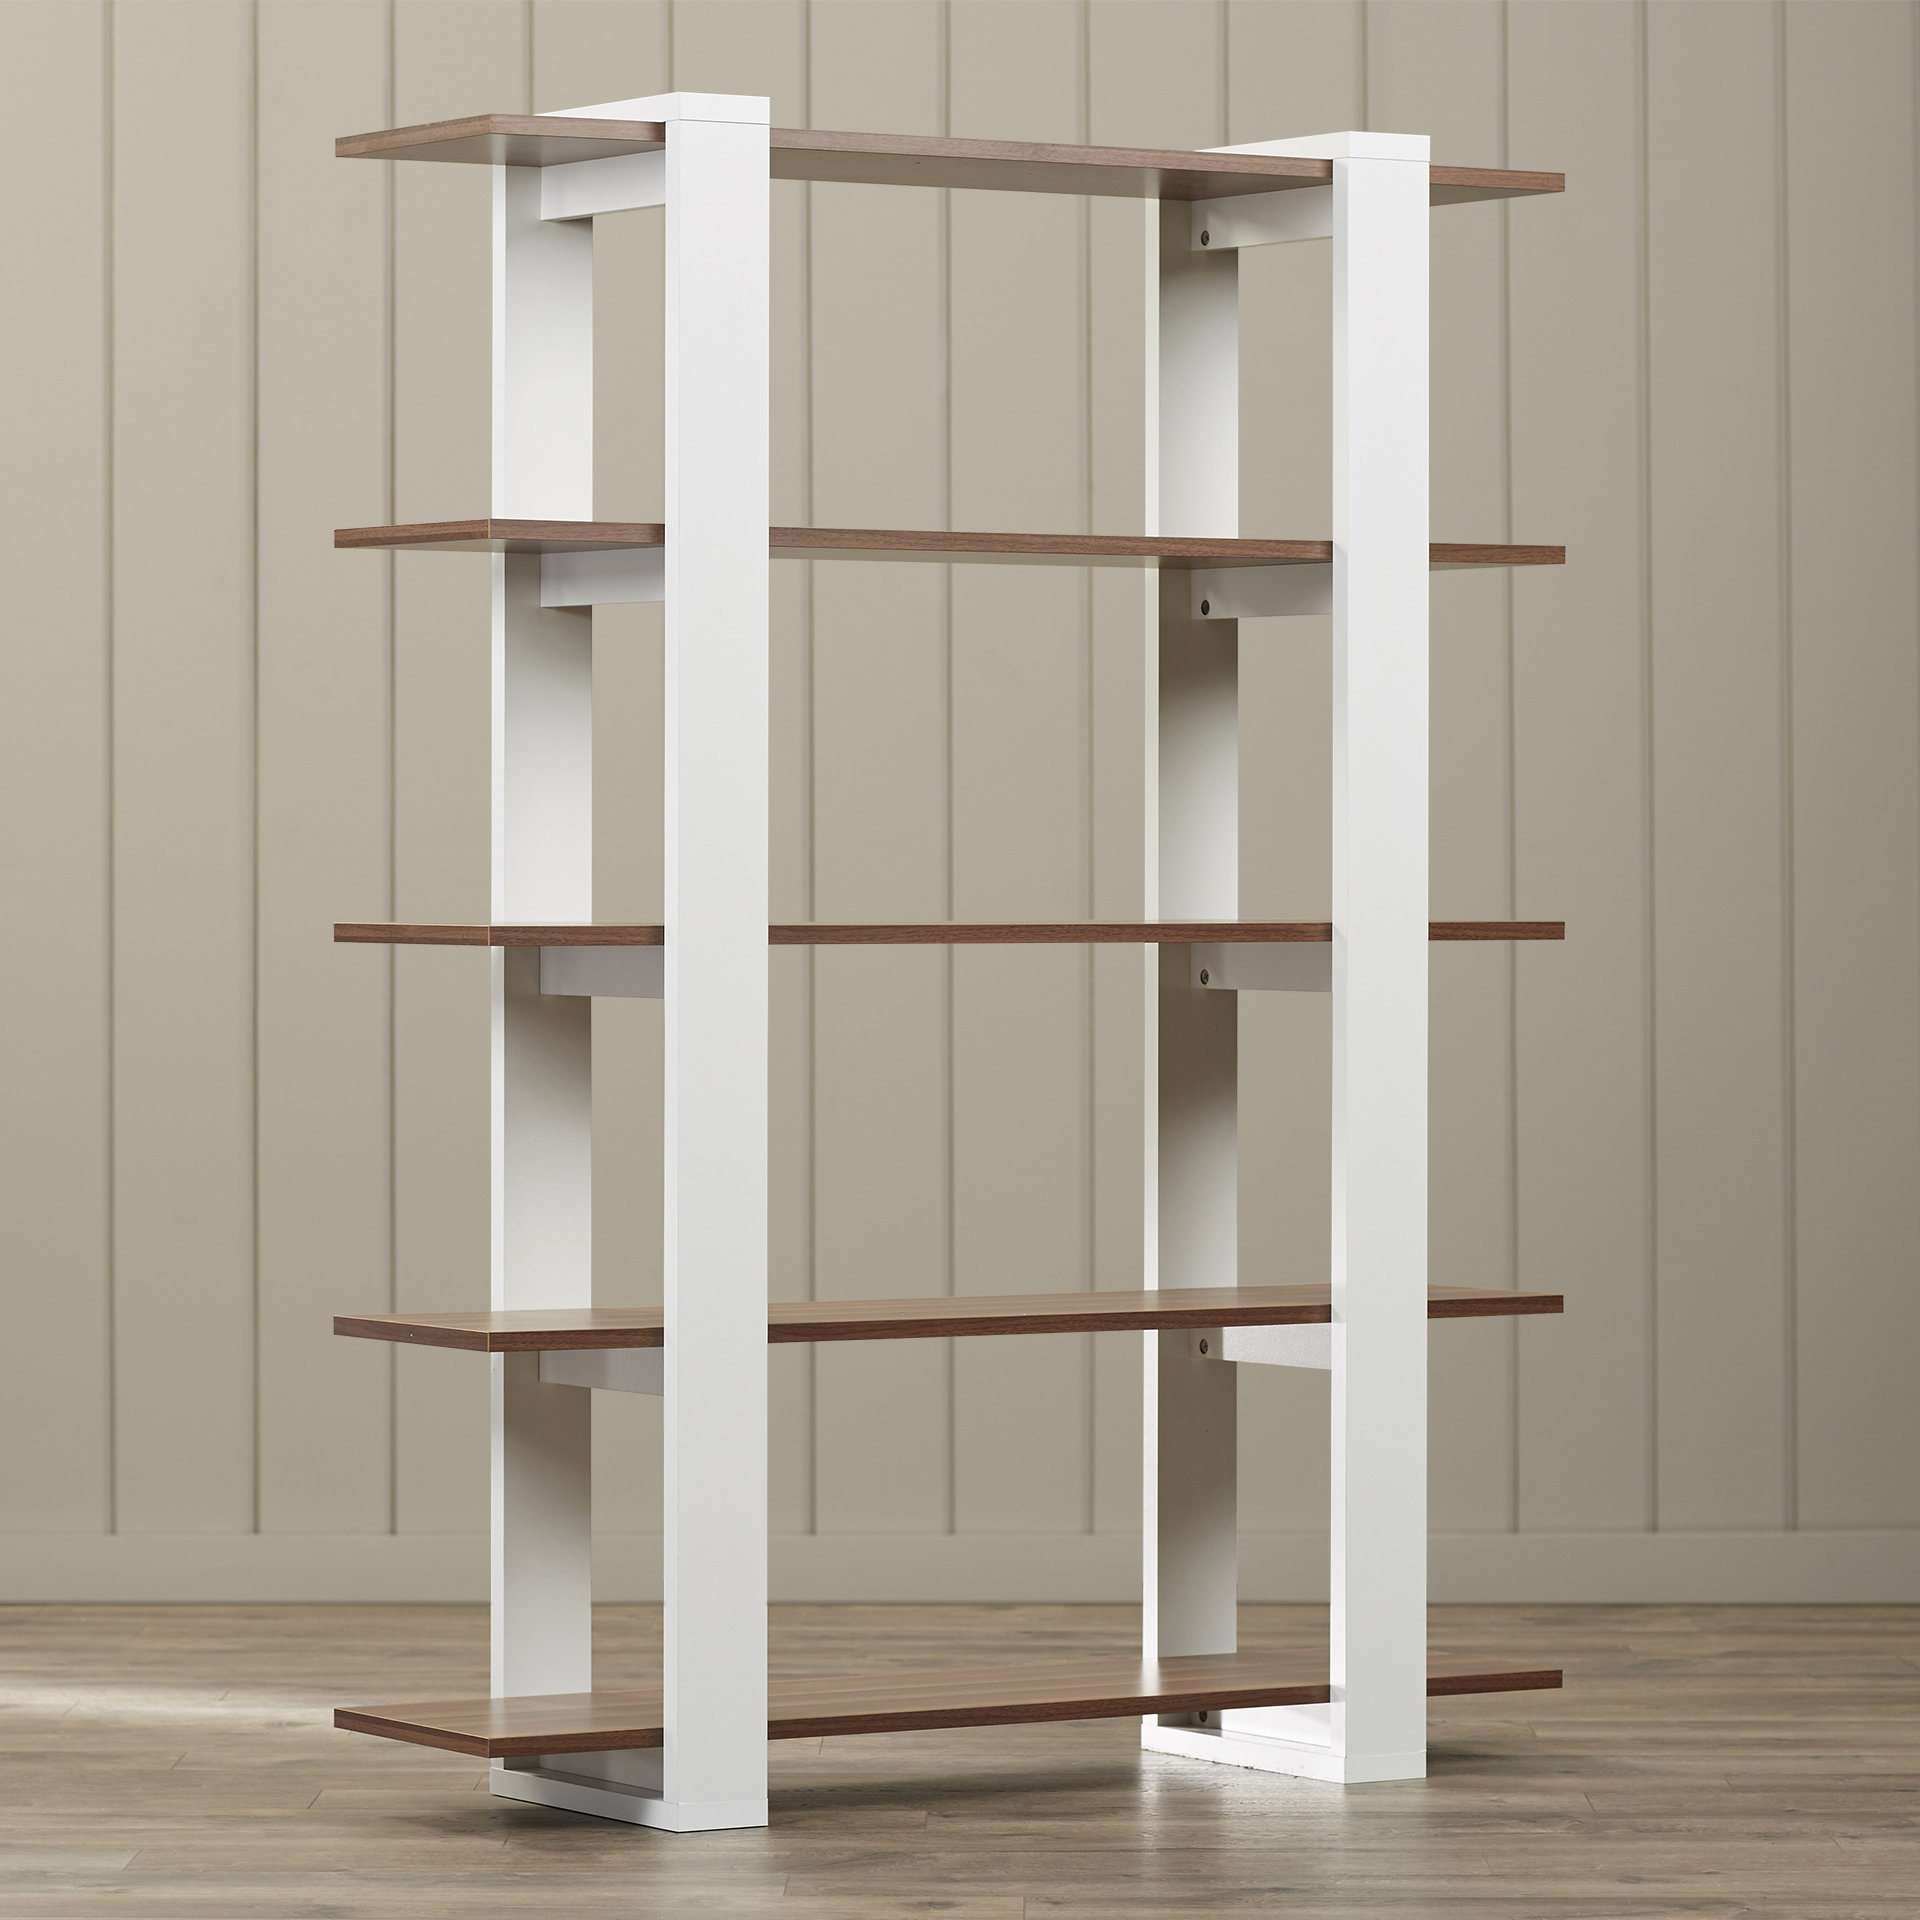 Widely Used Etagere Bookcase Throughout Waverley Etagere Bookcases (View 9 of 20)